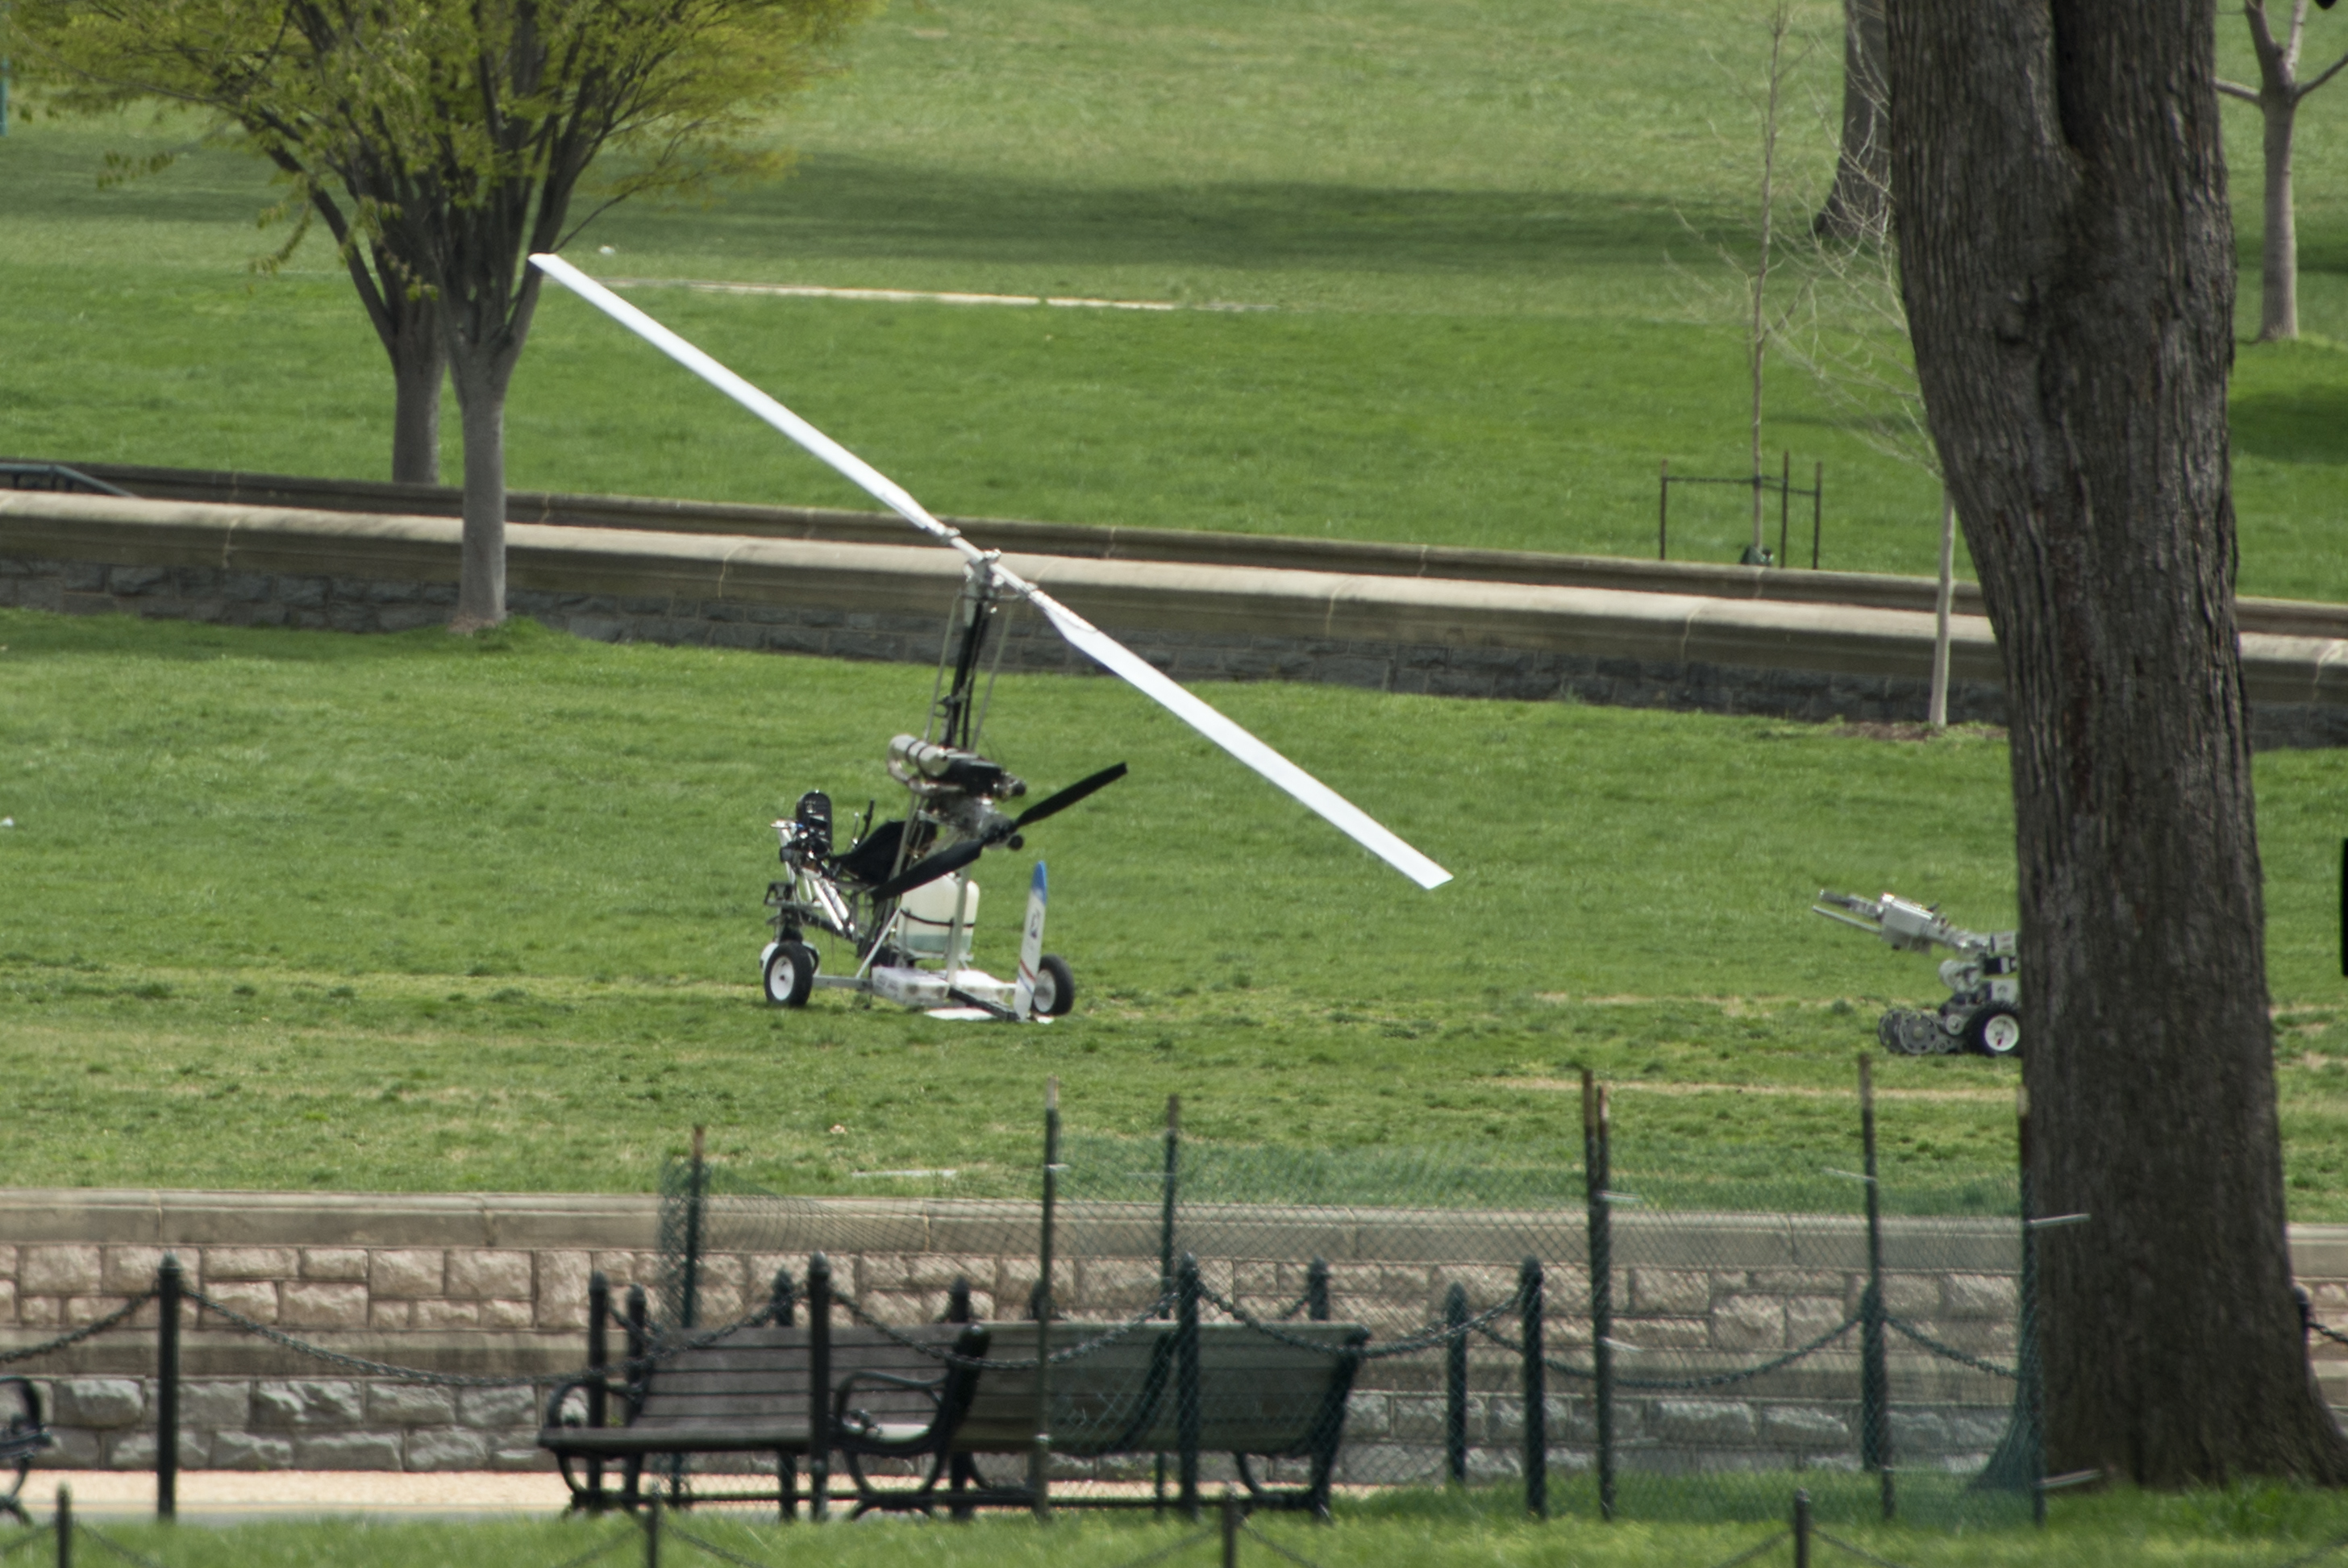 A man was arrested after landing a gyrocopter on the West Lawn of the U.S. Capitol on Wednesday, April 15, 2015. The small helicopter was painted with a U.S. Postal Service logo. Photo By Bill Clark/CQ Roll Call